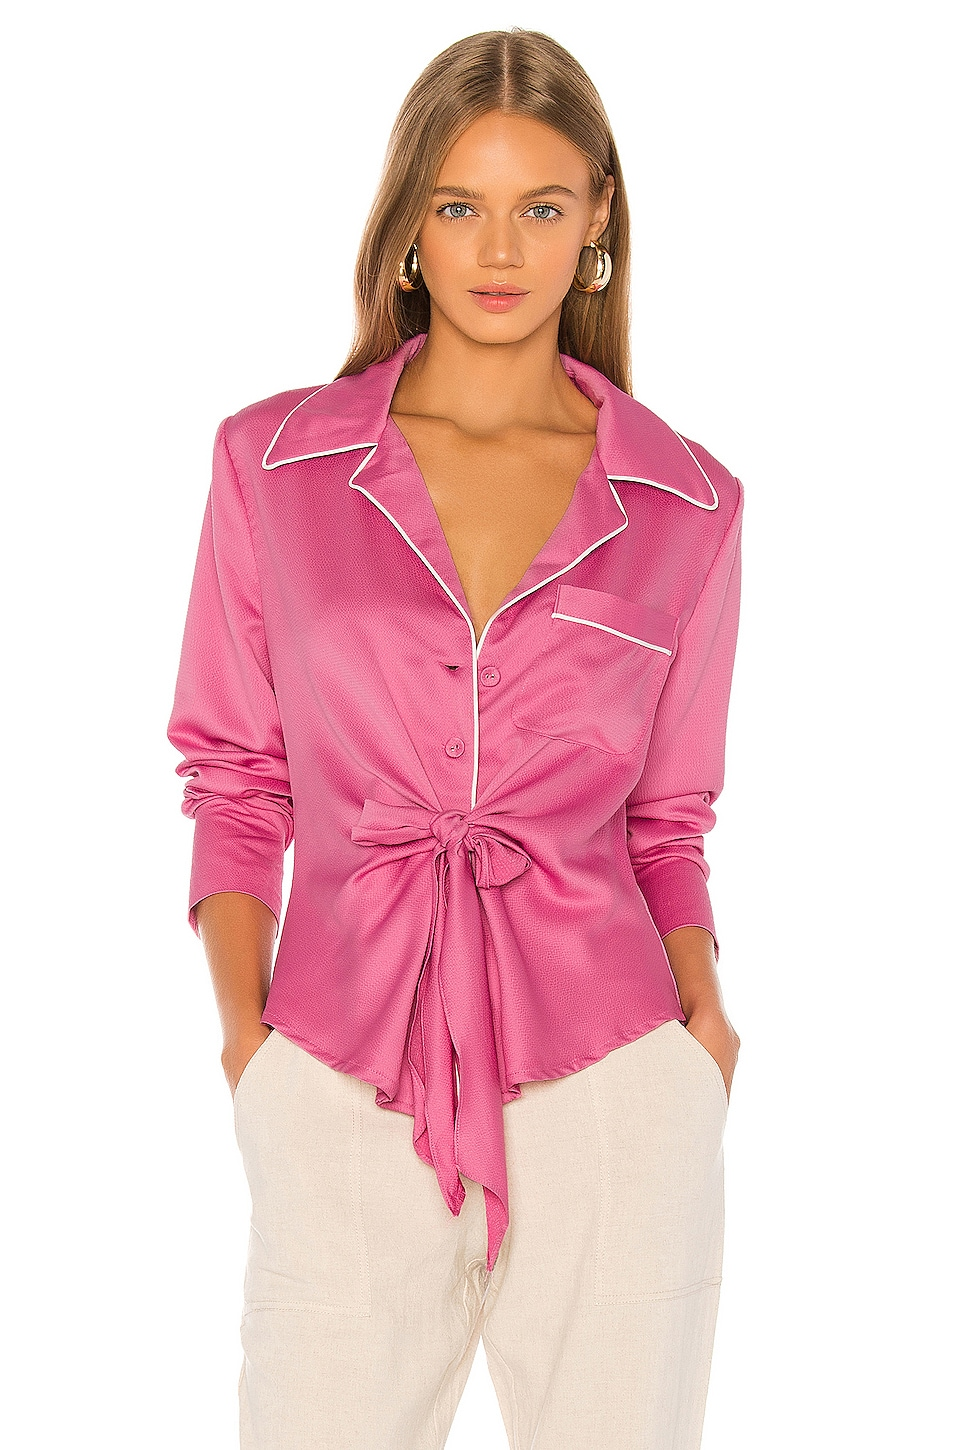 L'Academie The Eloise Top in Orchid